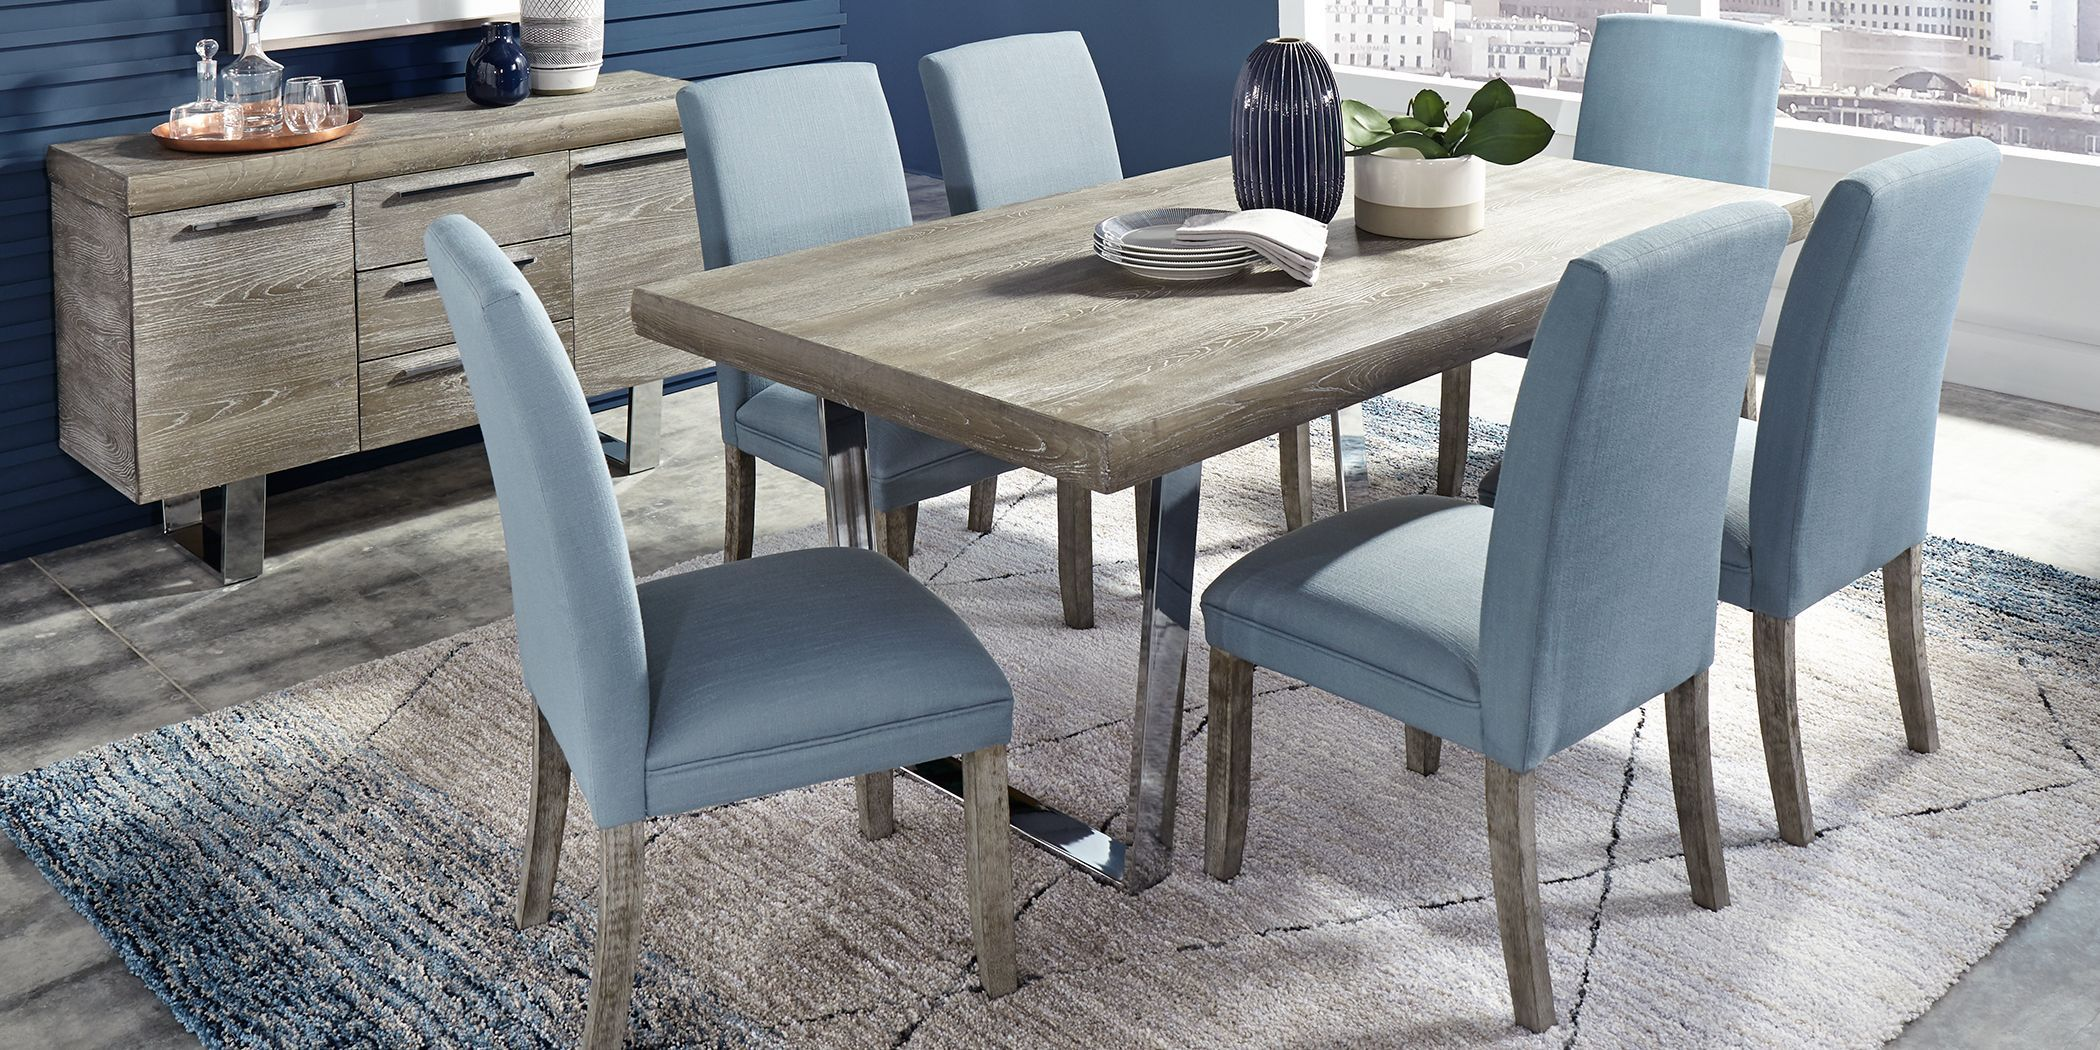 Cindy Crawford Home San Francisco Gray 5 Pc Dining Room With Blue Chairs In 2021 Dining Room Sets Affordable Dining Room Affordable Dining Room Sets